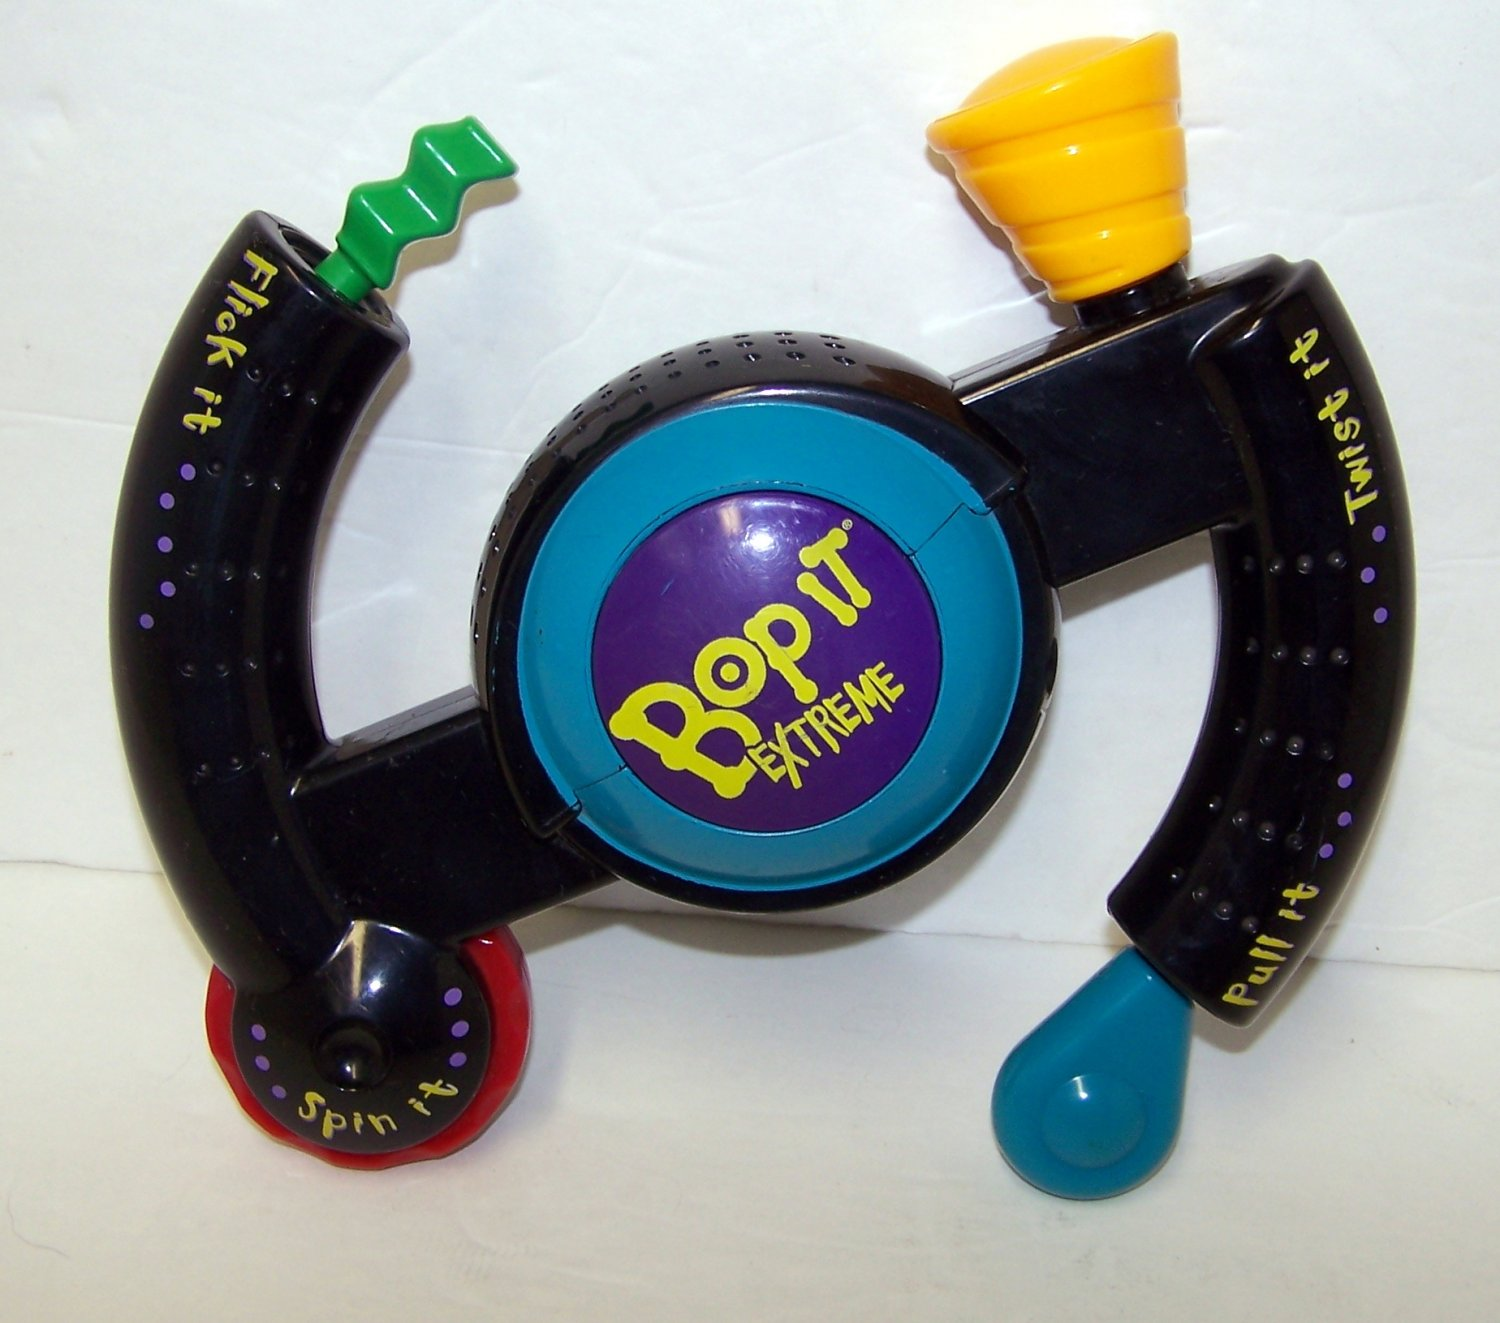 bop it beats instructions